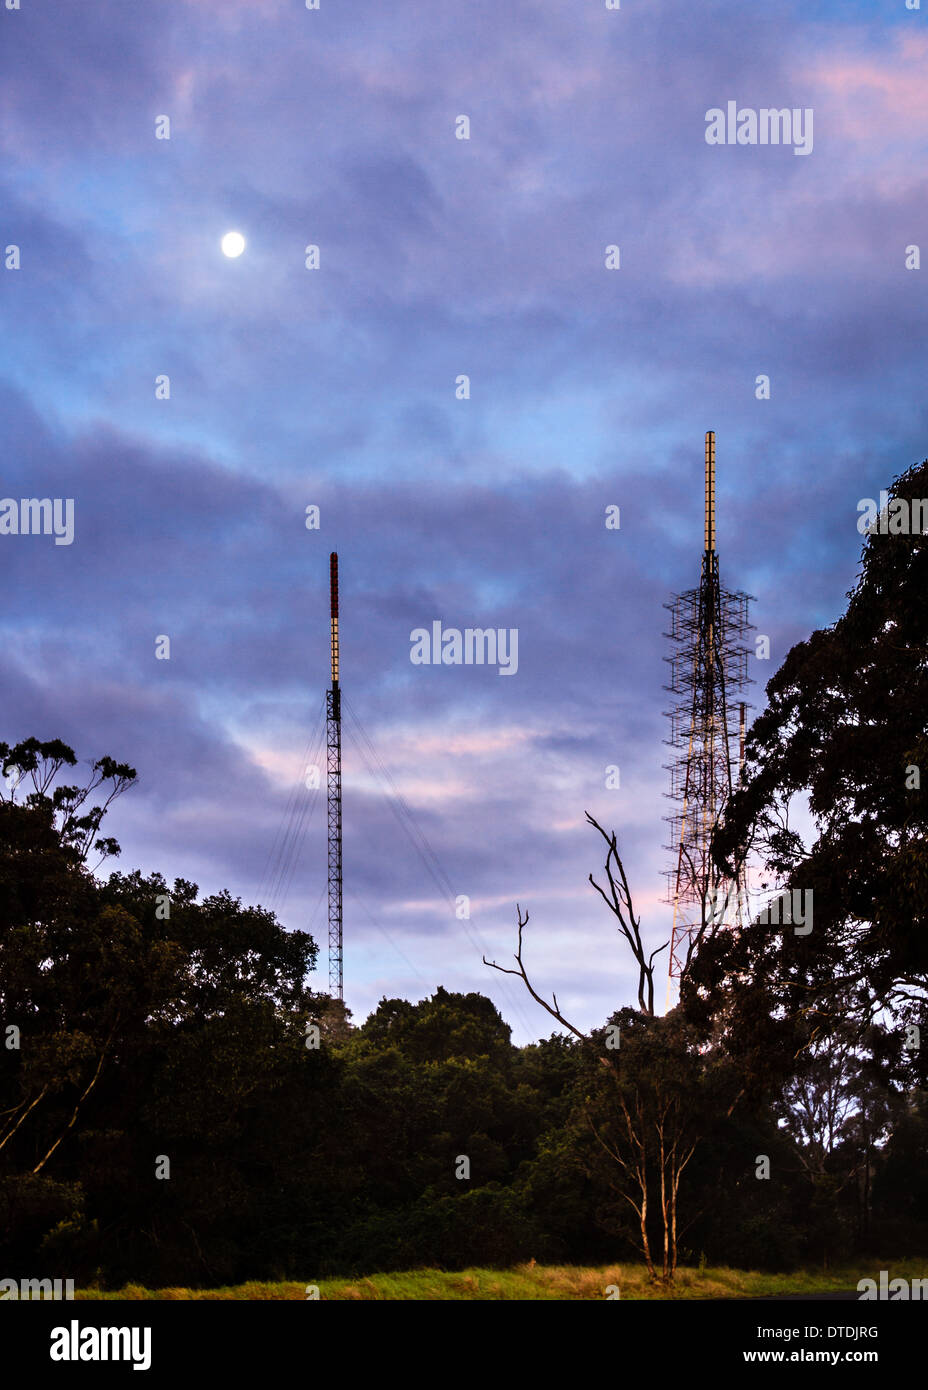 Mobile or cell phone masts in the Australian bush, under a full moon and a pink and purple twilight sky - Stock Image